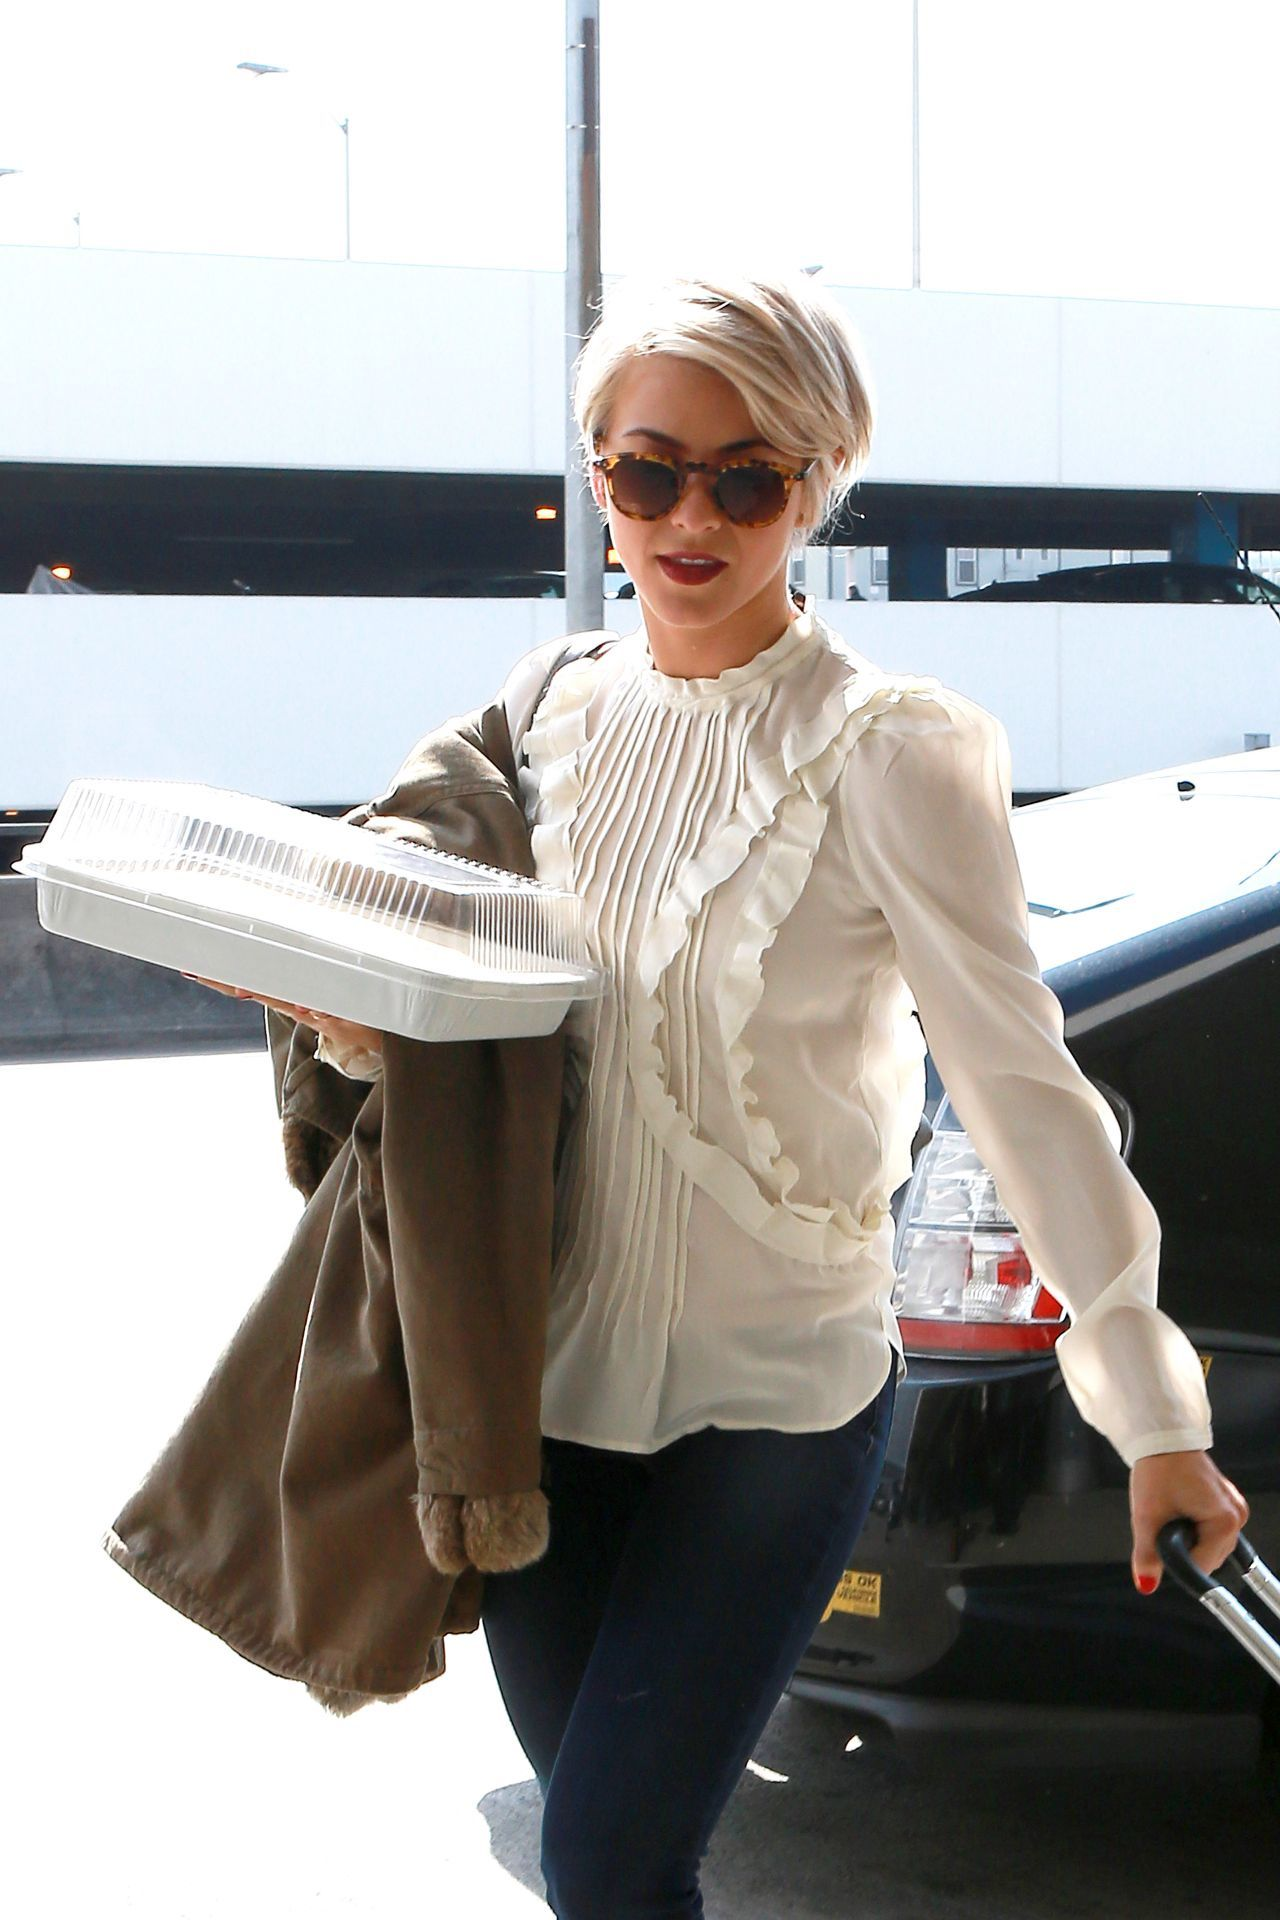 Julianne Hough Sports New Shorter Hair February 2014 15 Jpg 1280 1920 Short Hair Styles Mark Ballas Julianne Hough